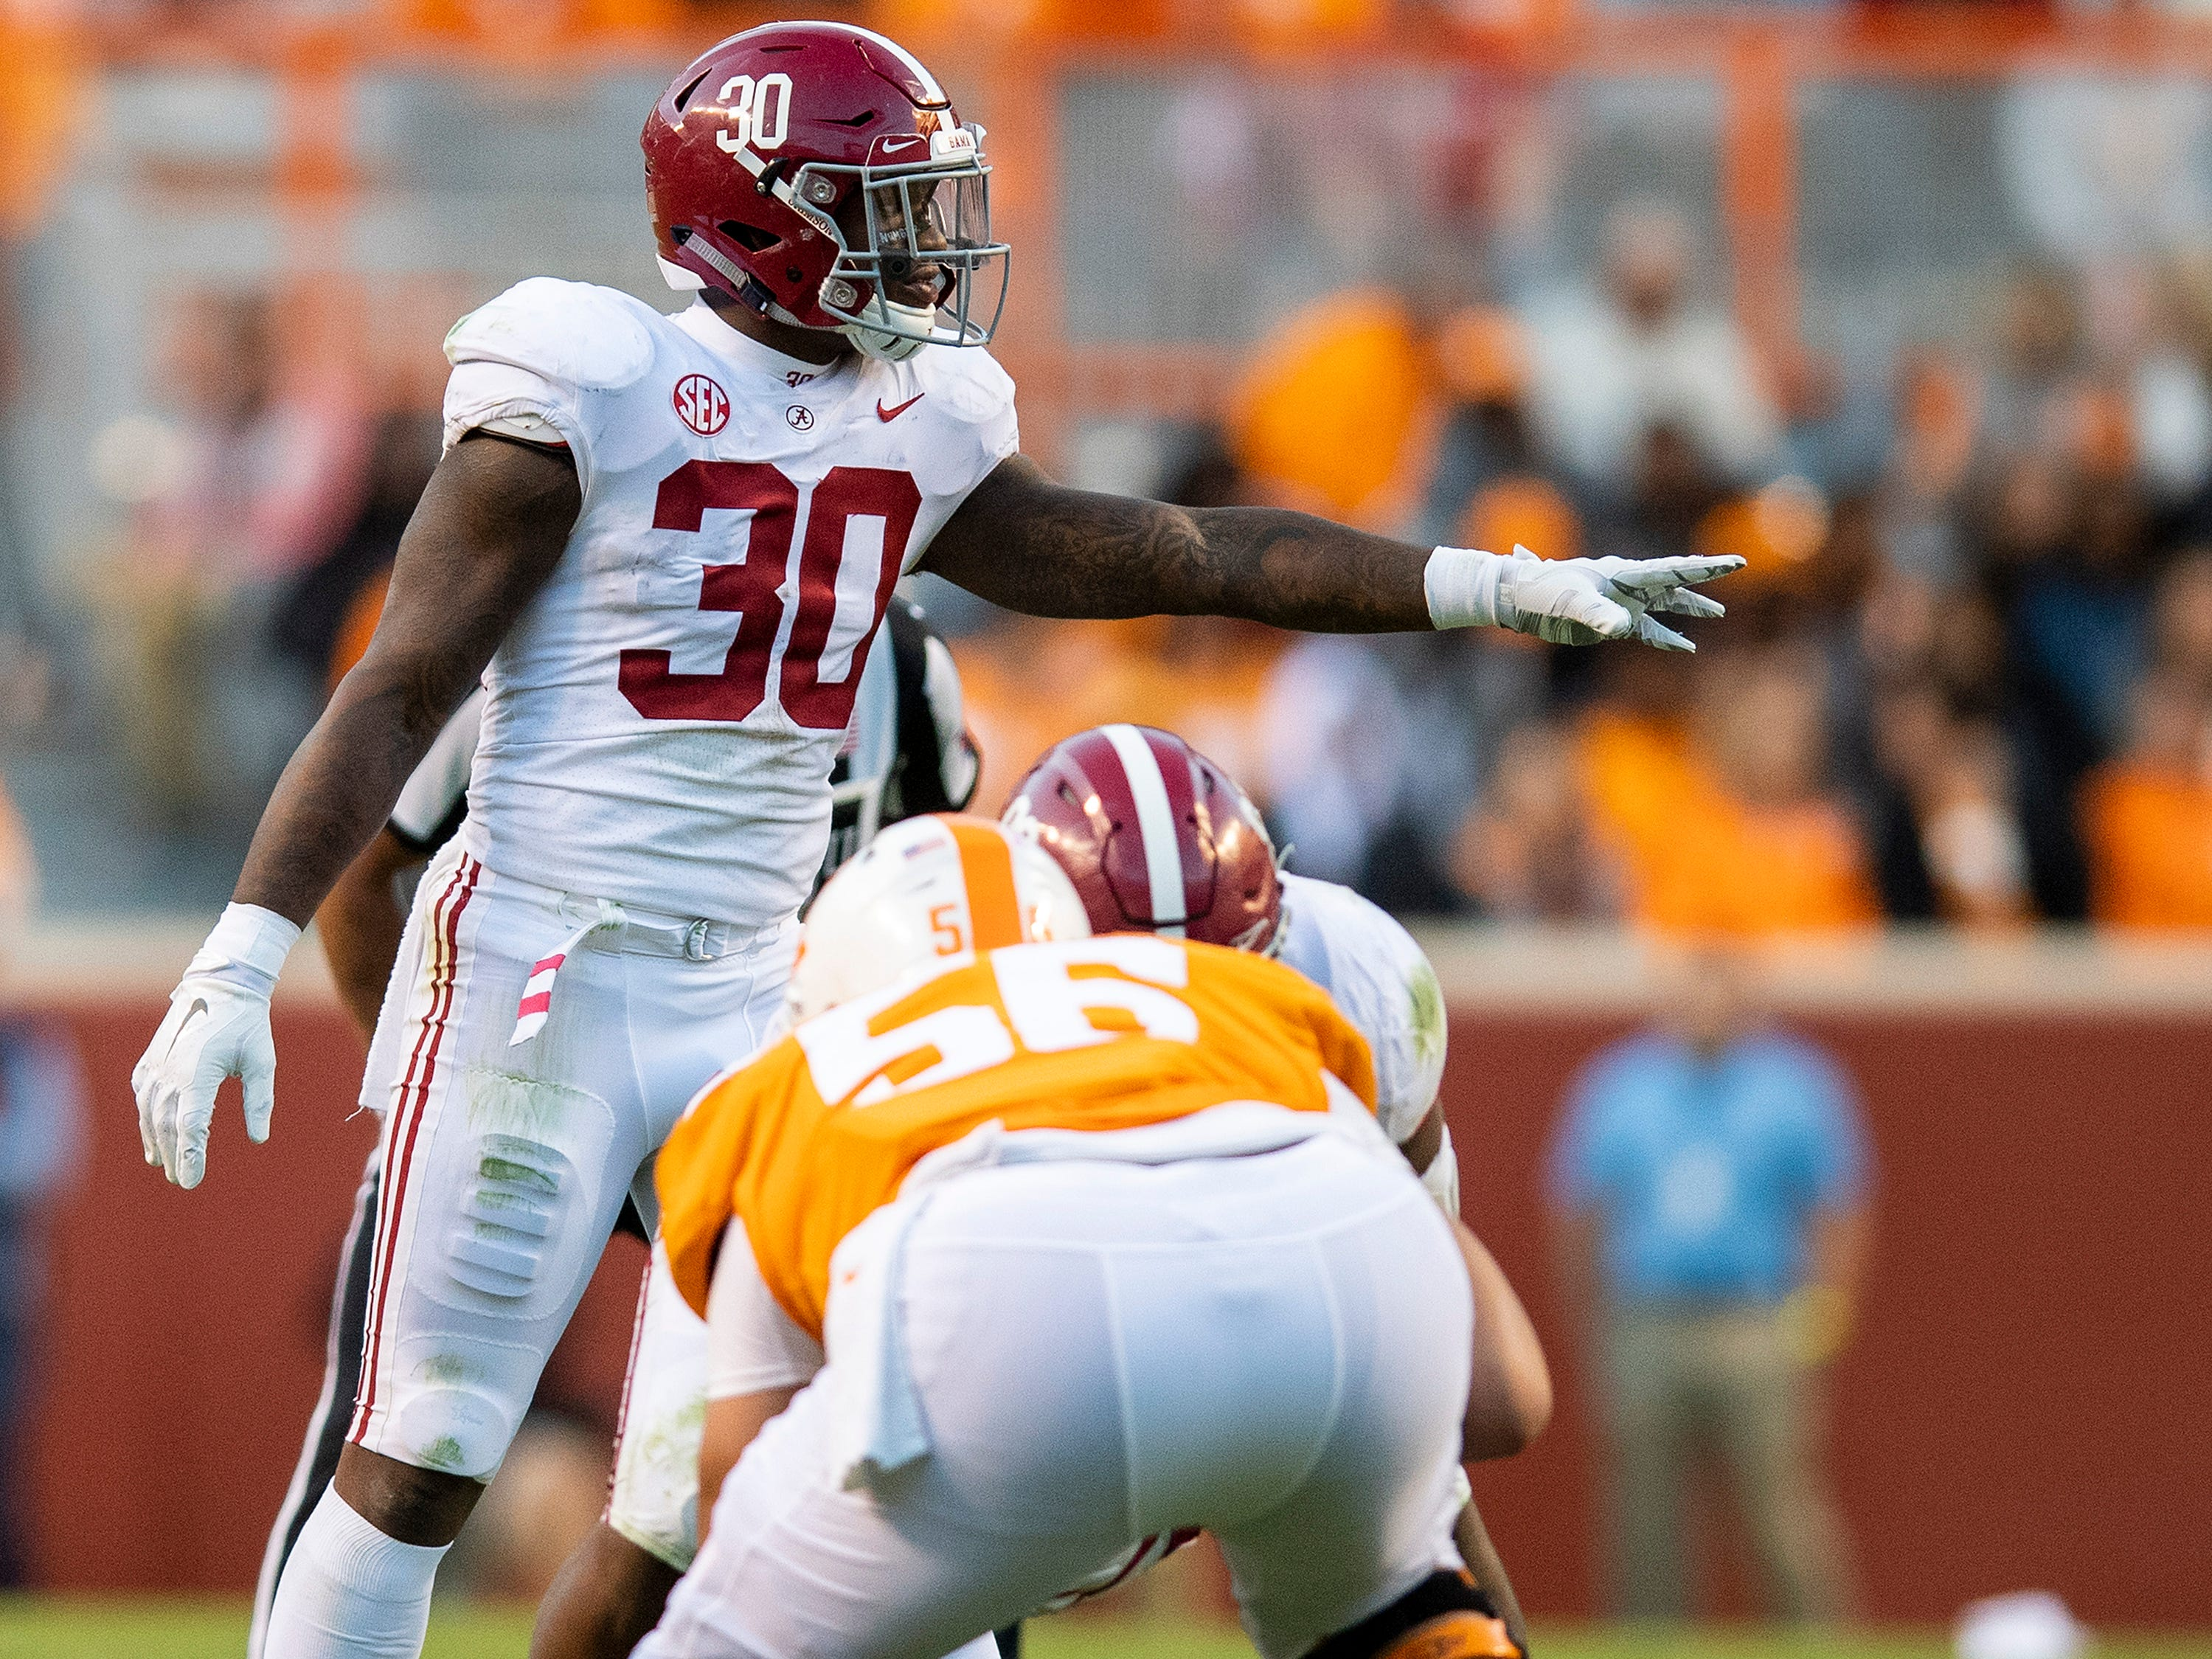 Alabama linebacker Mack Wilson (30) directs the defense against Tennessee in second half action at Neyland Stadium in Knoxville, Tn., on Saturday October 20, 2018.